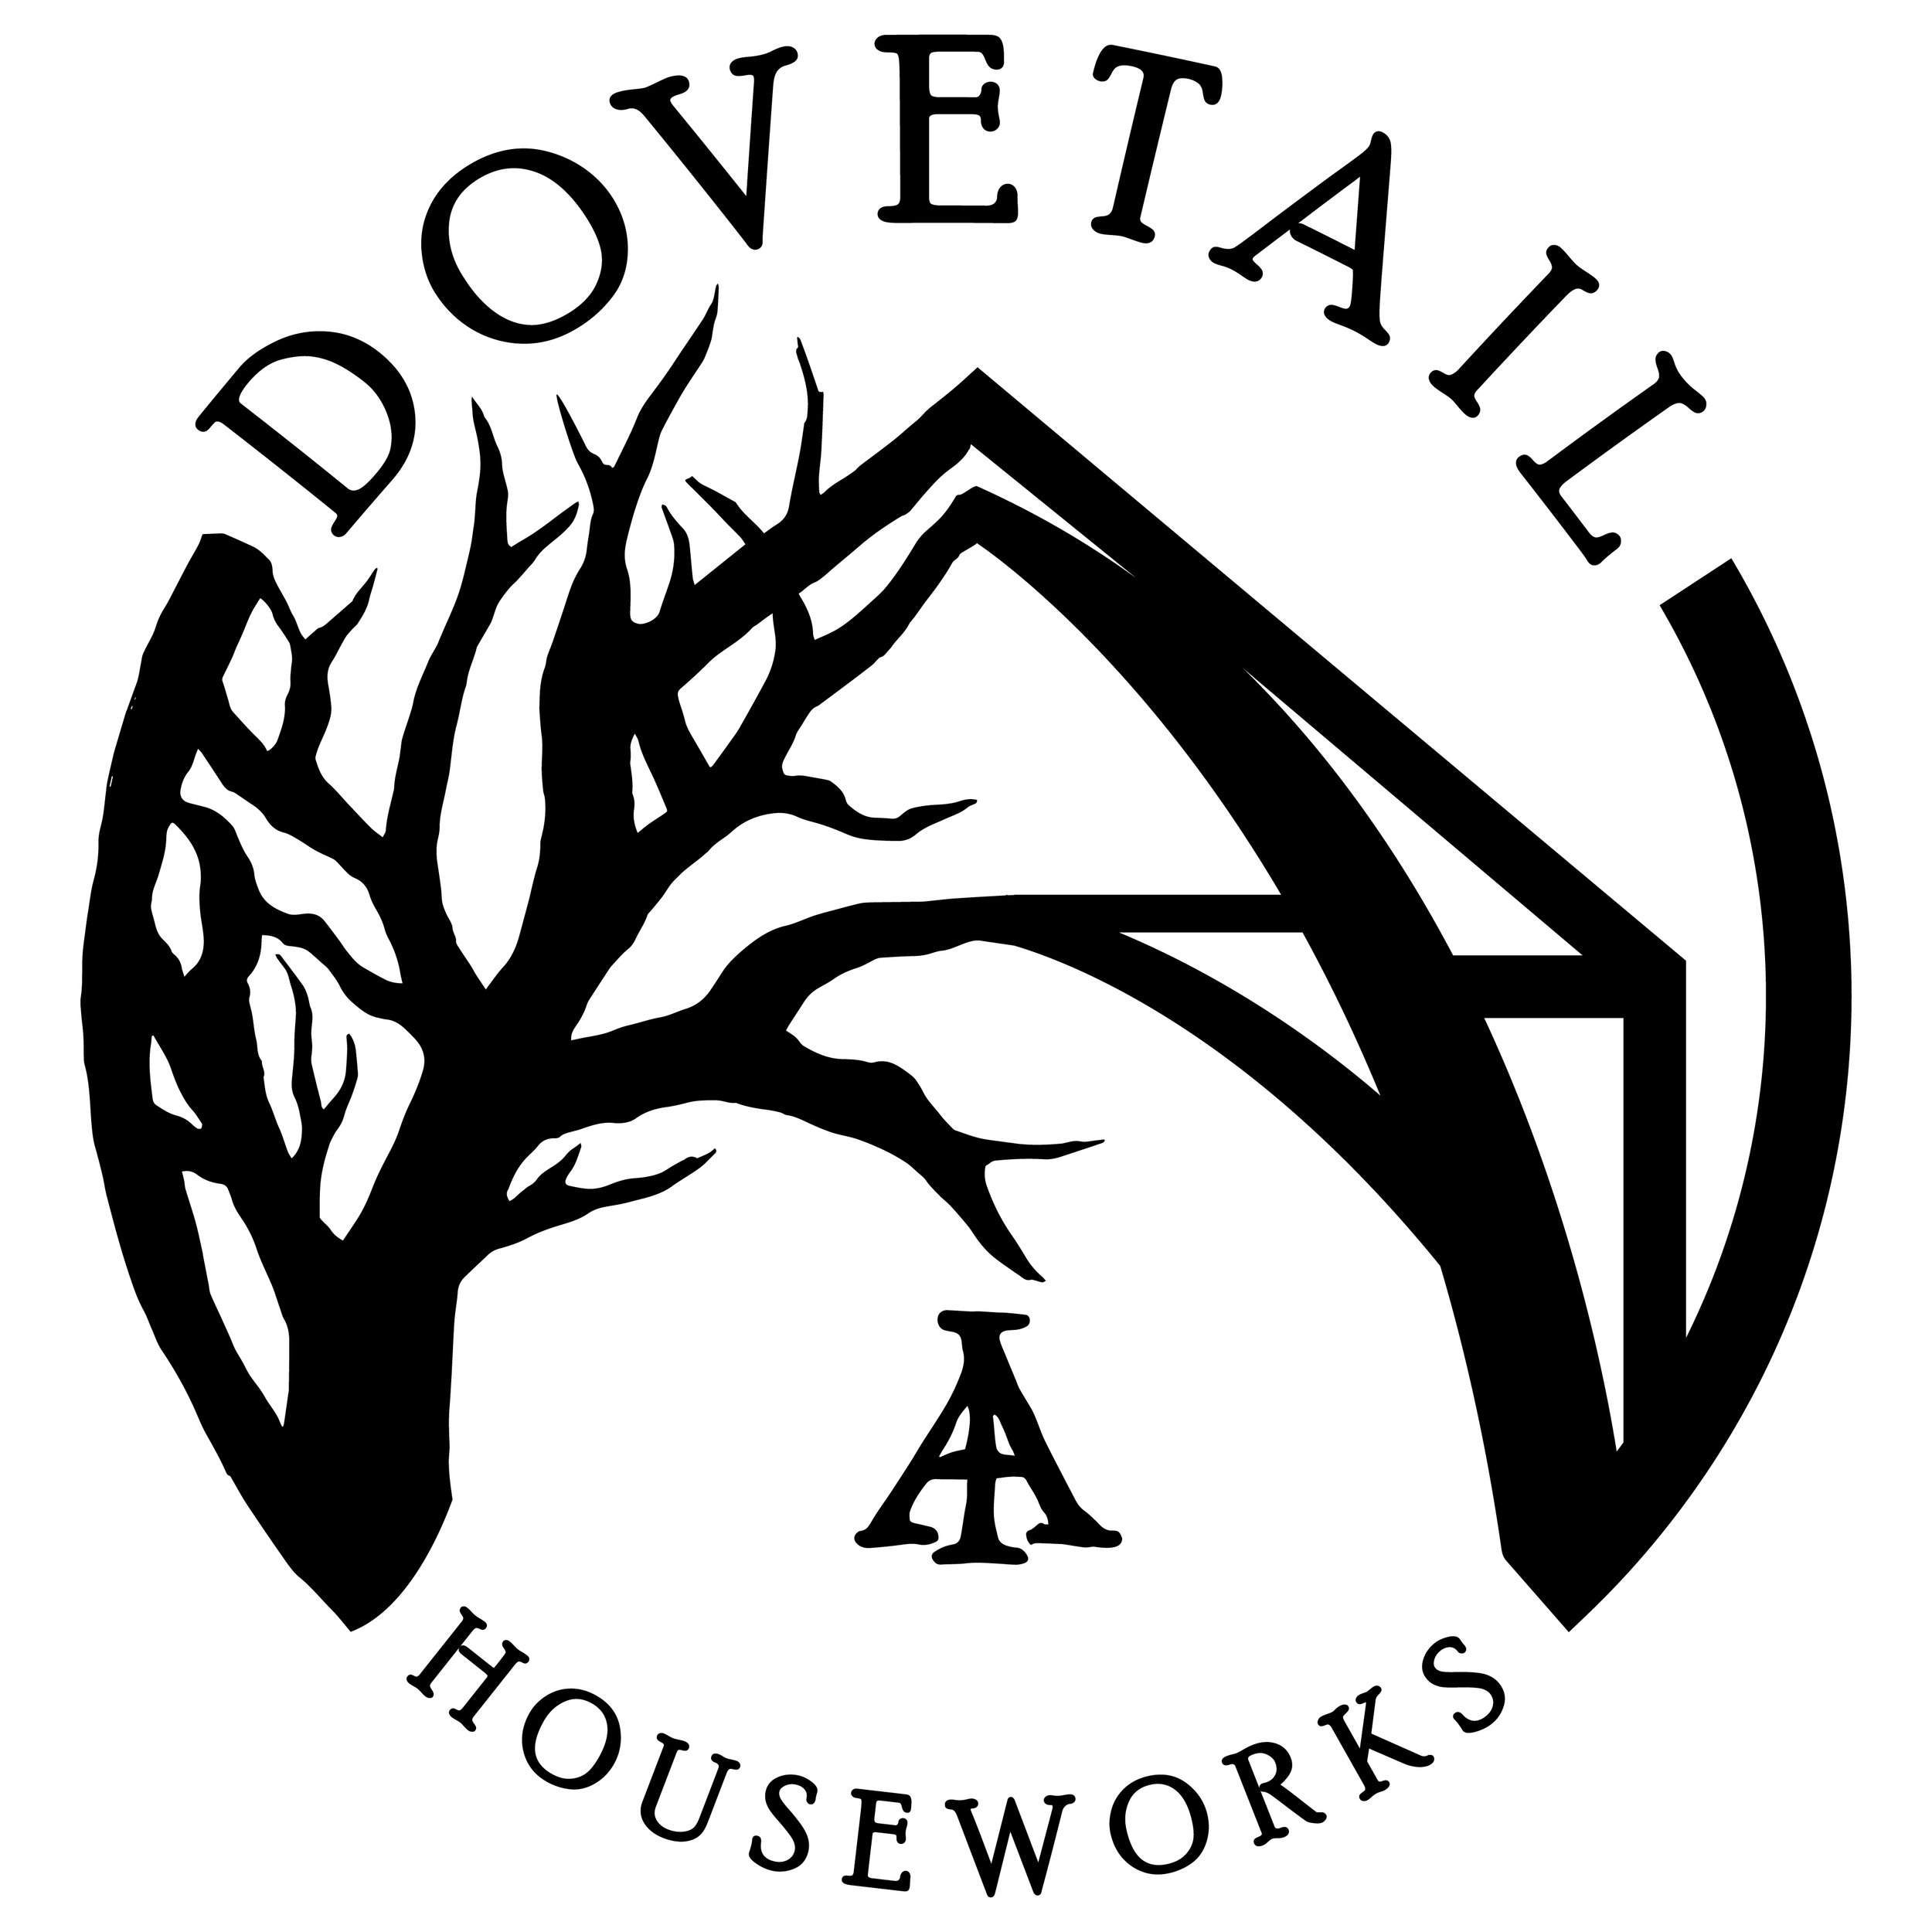 dovetail_logo_final-01.jpg